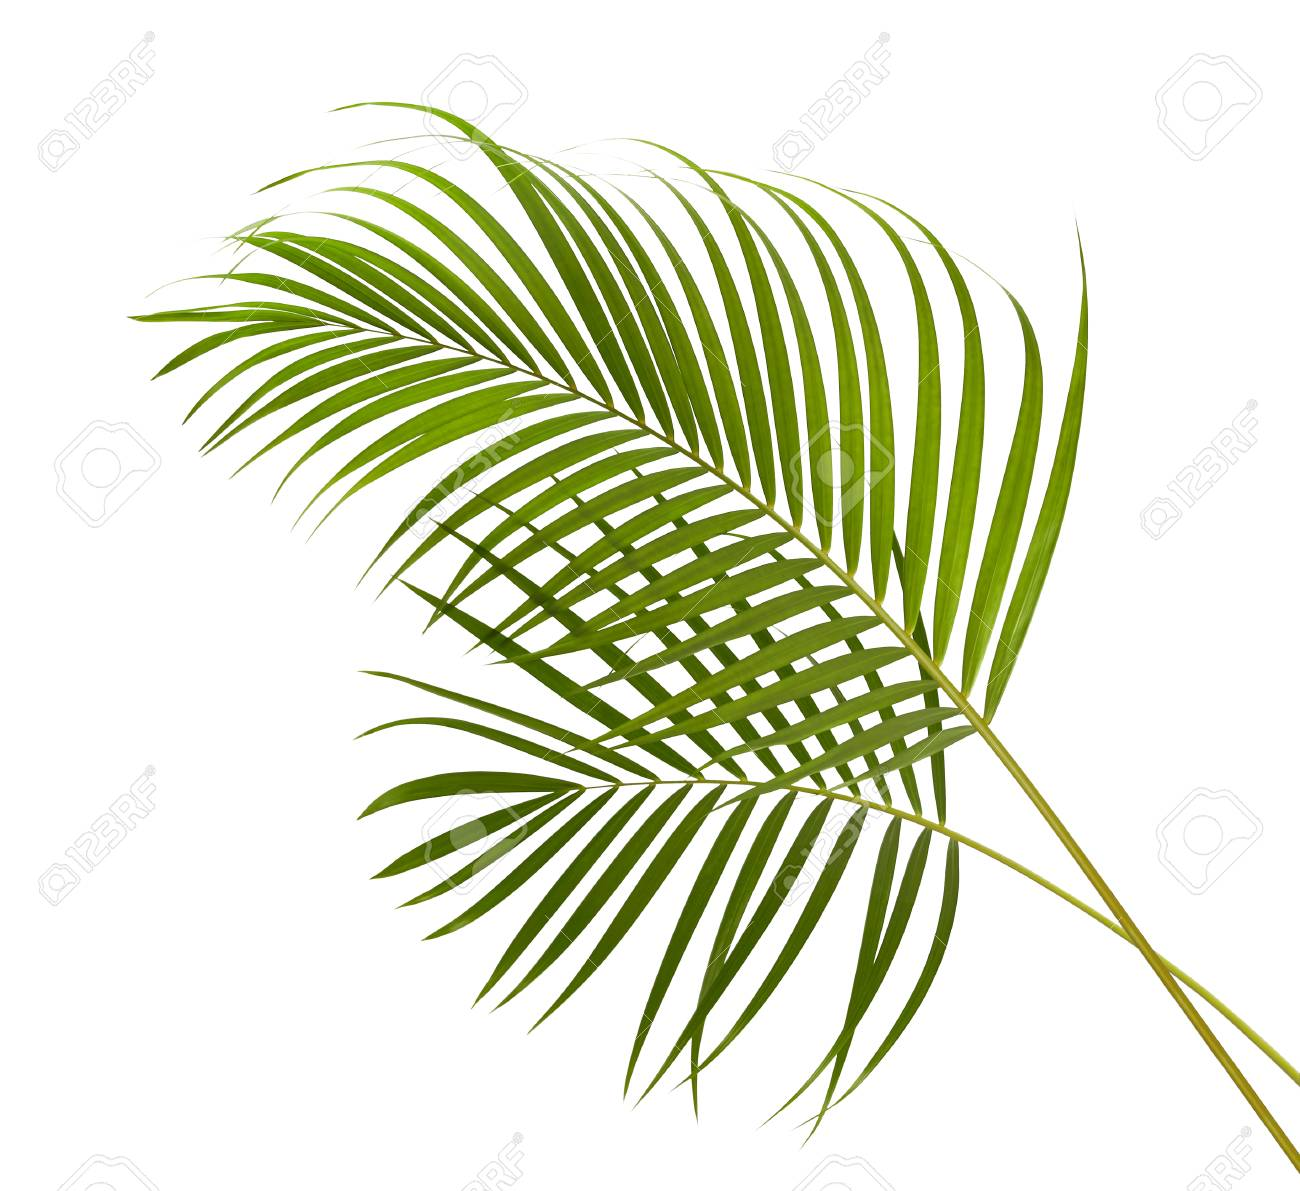 Yellow Palm Leaves Dypsis Lutescens Or Golden Cane Palm Areca Stock Photo Picture And Royalty Free Image Image 95038143